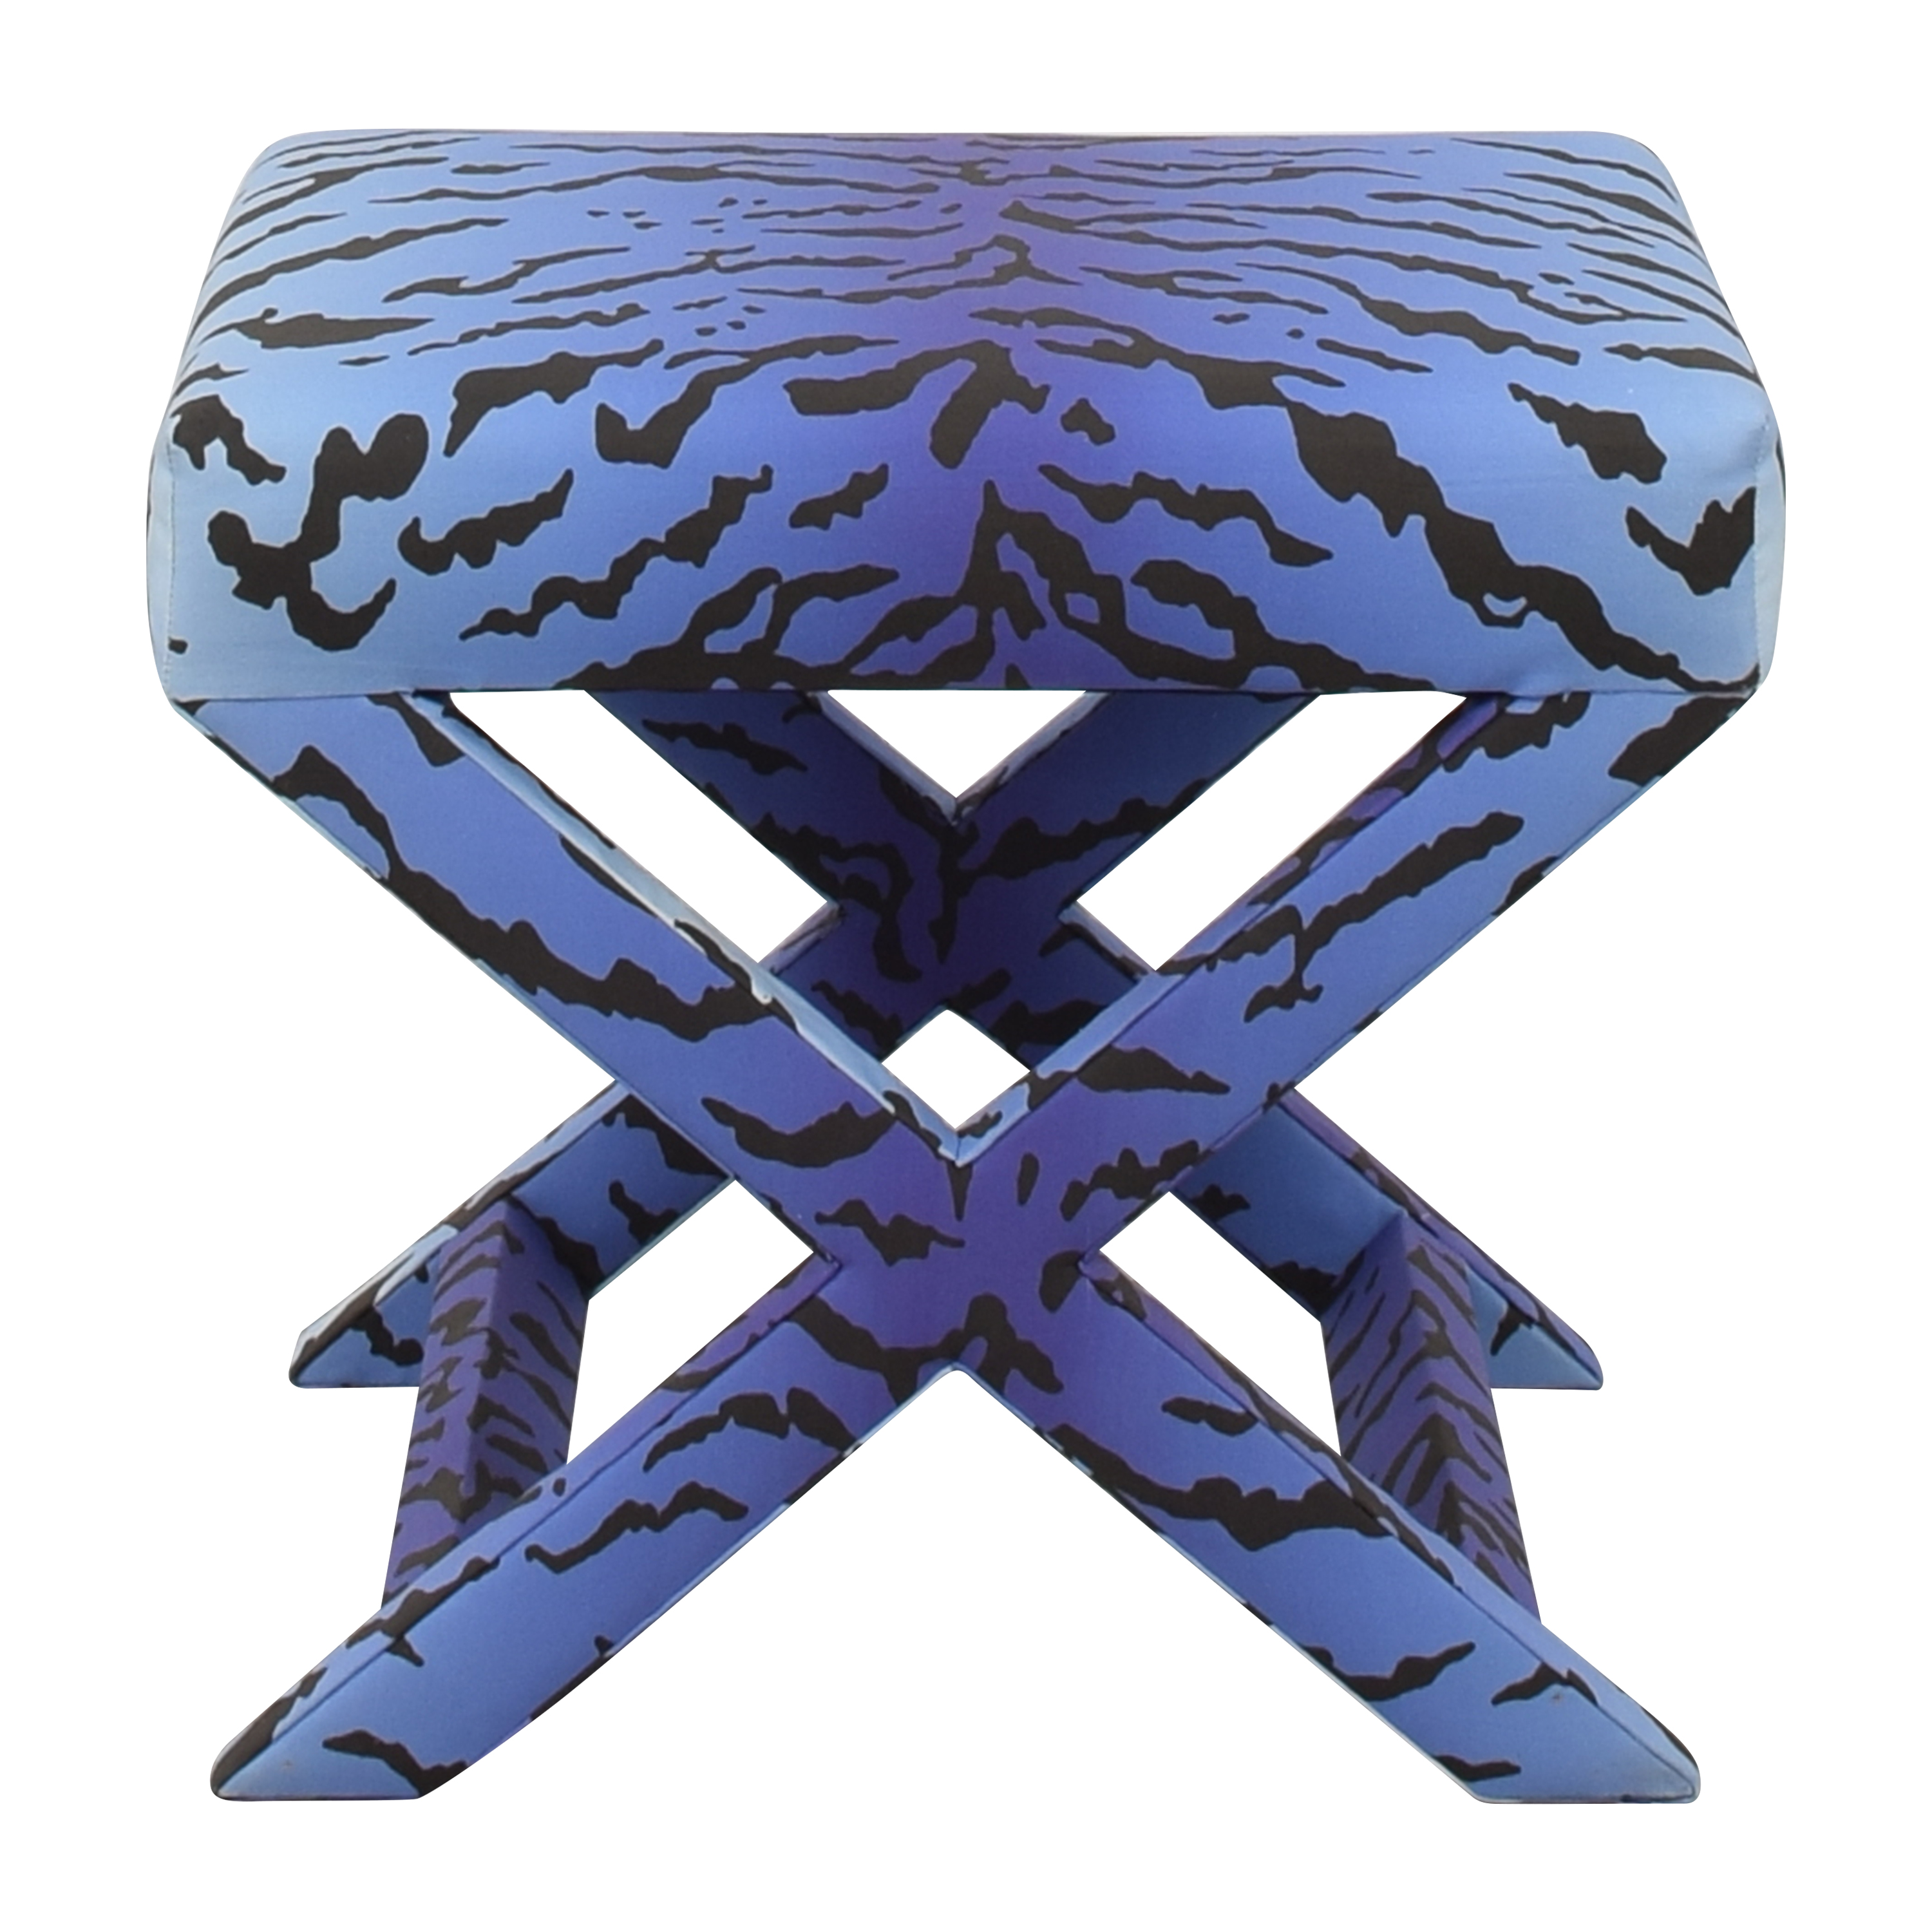 The Inside Royal Tiger X Bench / Chairs